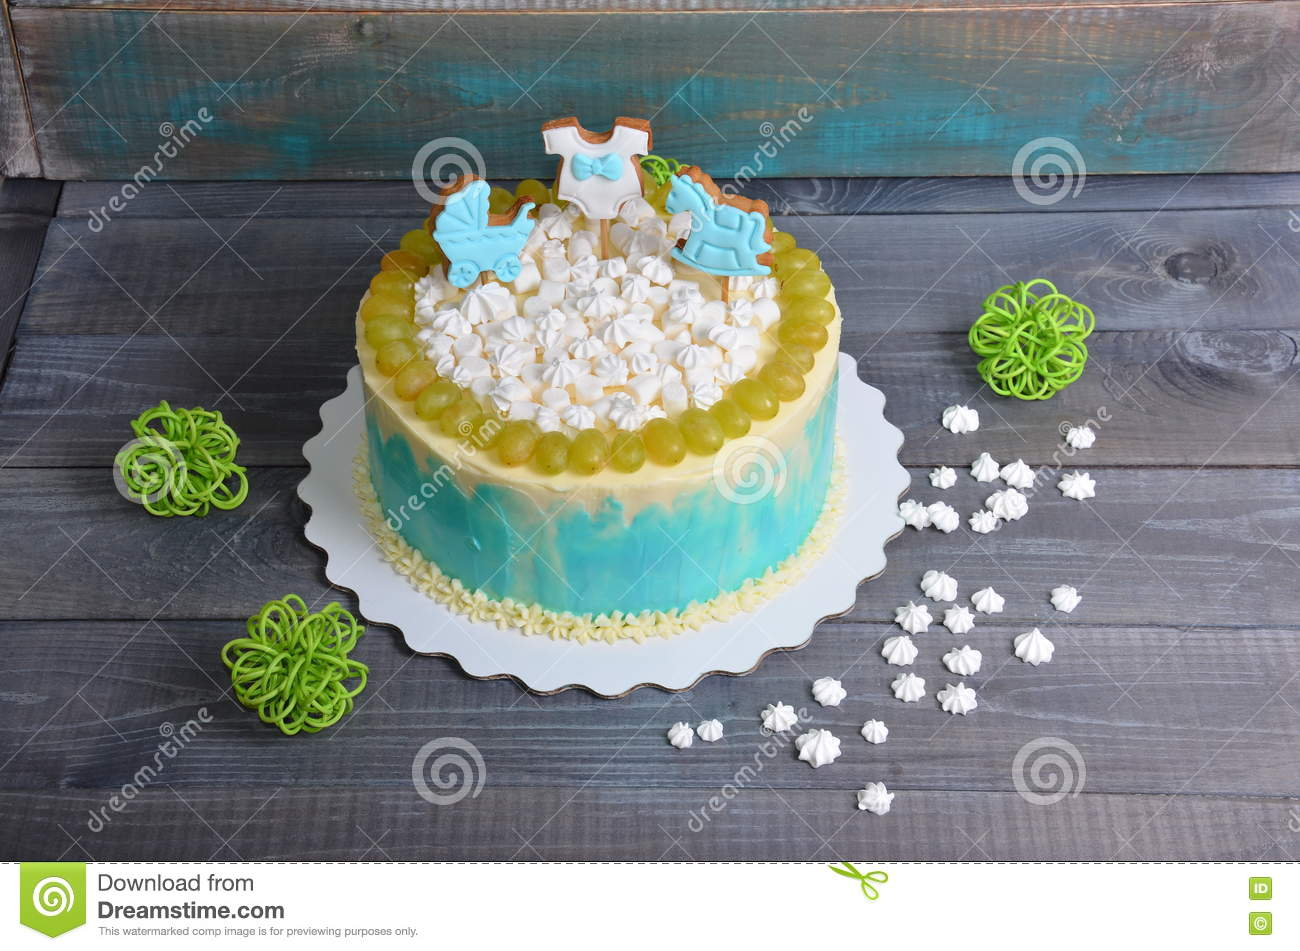 Astonishing Baby Boy Birthday Cake With Gingerbread And Grapes Stock Image Funny Birthday Cards Online Alyptdamsfinfo